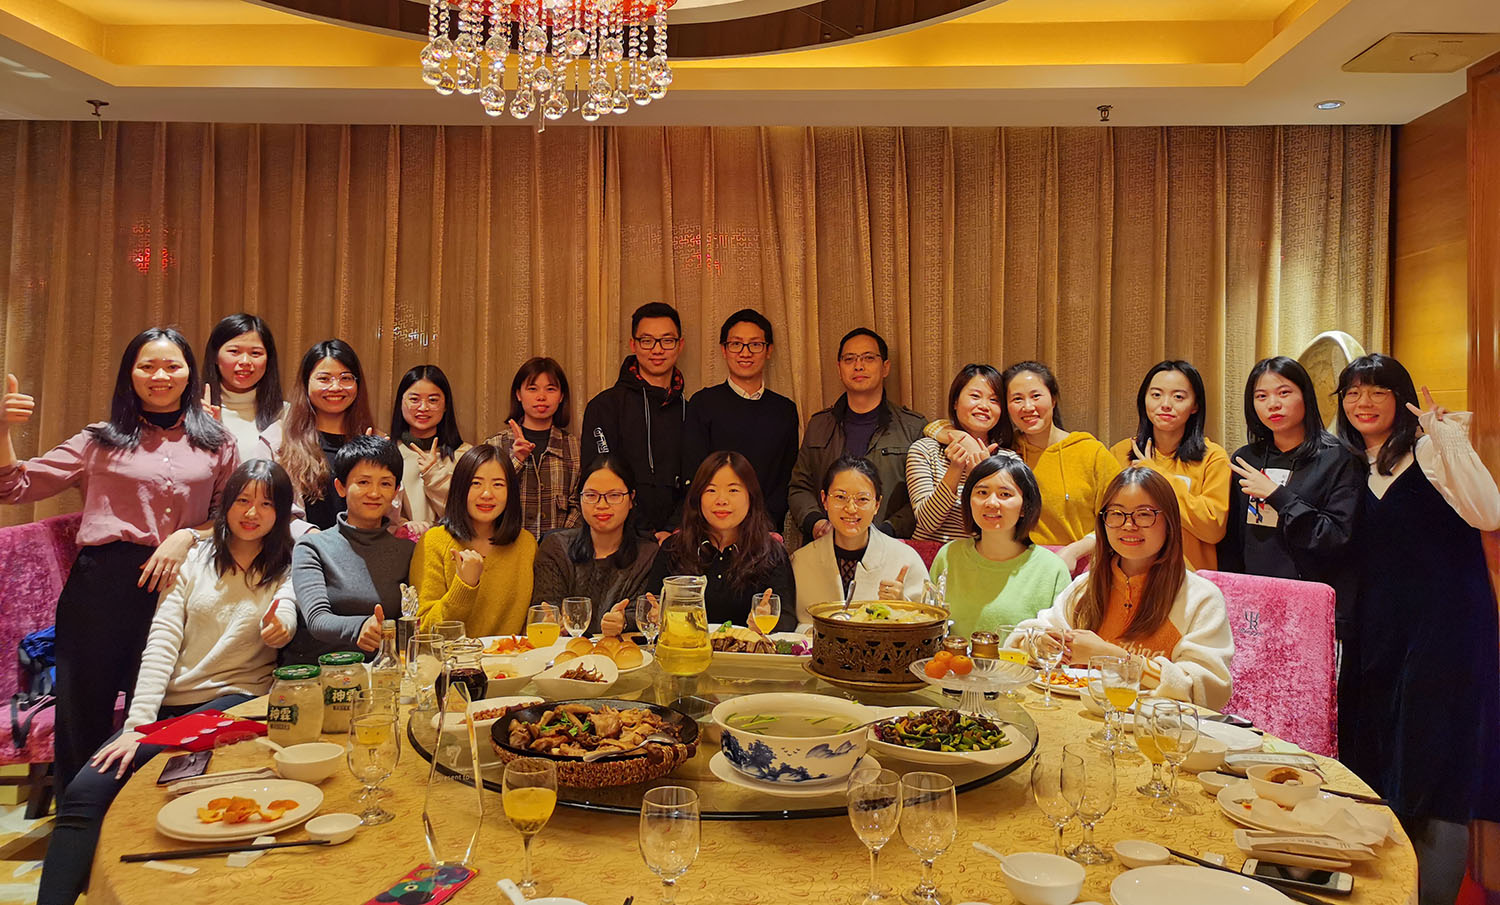 A Year-End Dinner for Employees